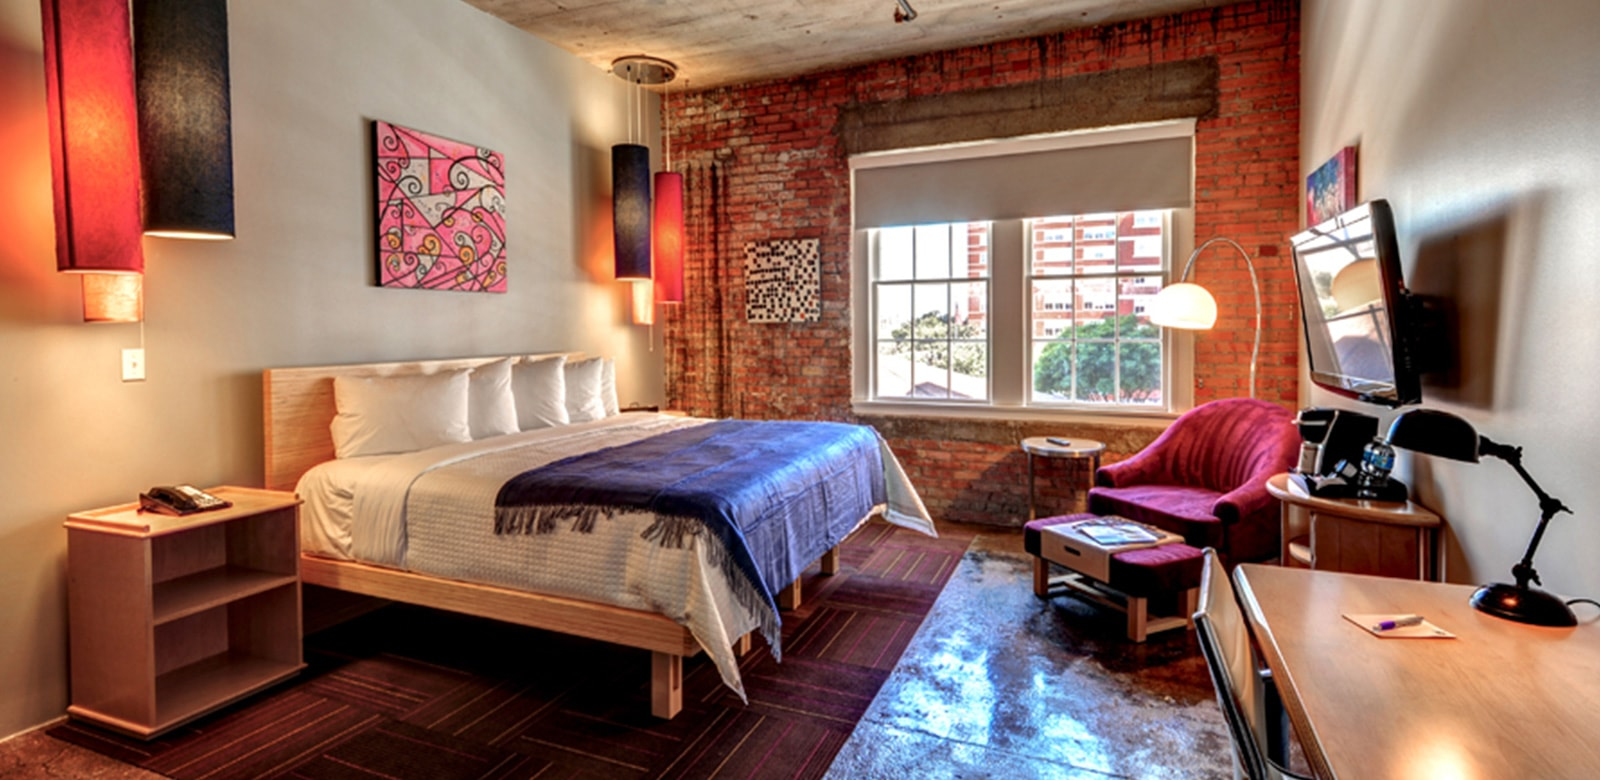 Hotel renovations: Dallas properties show off overhauls